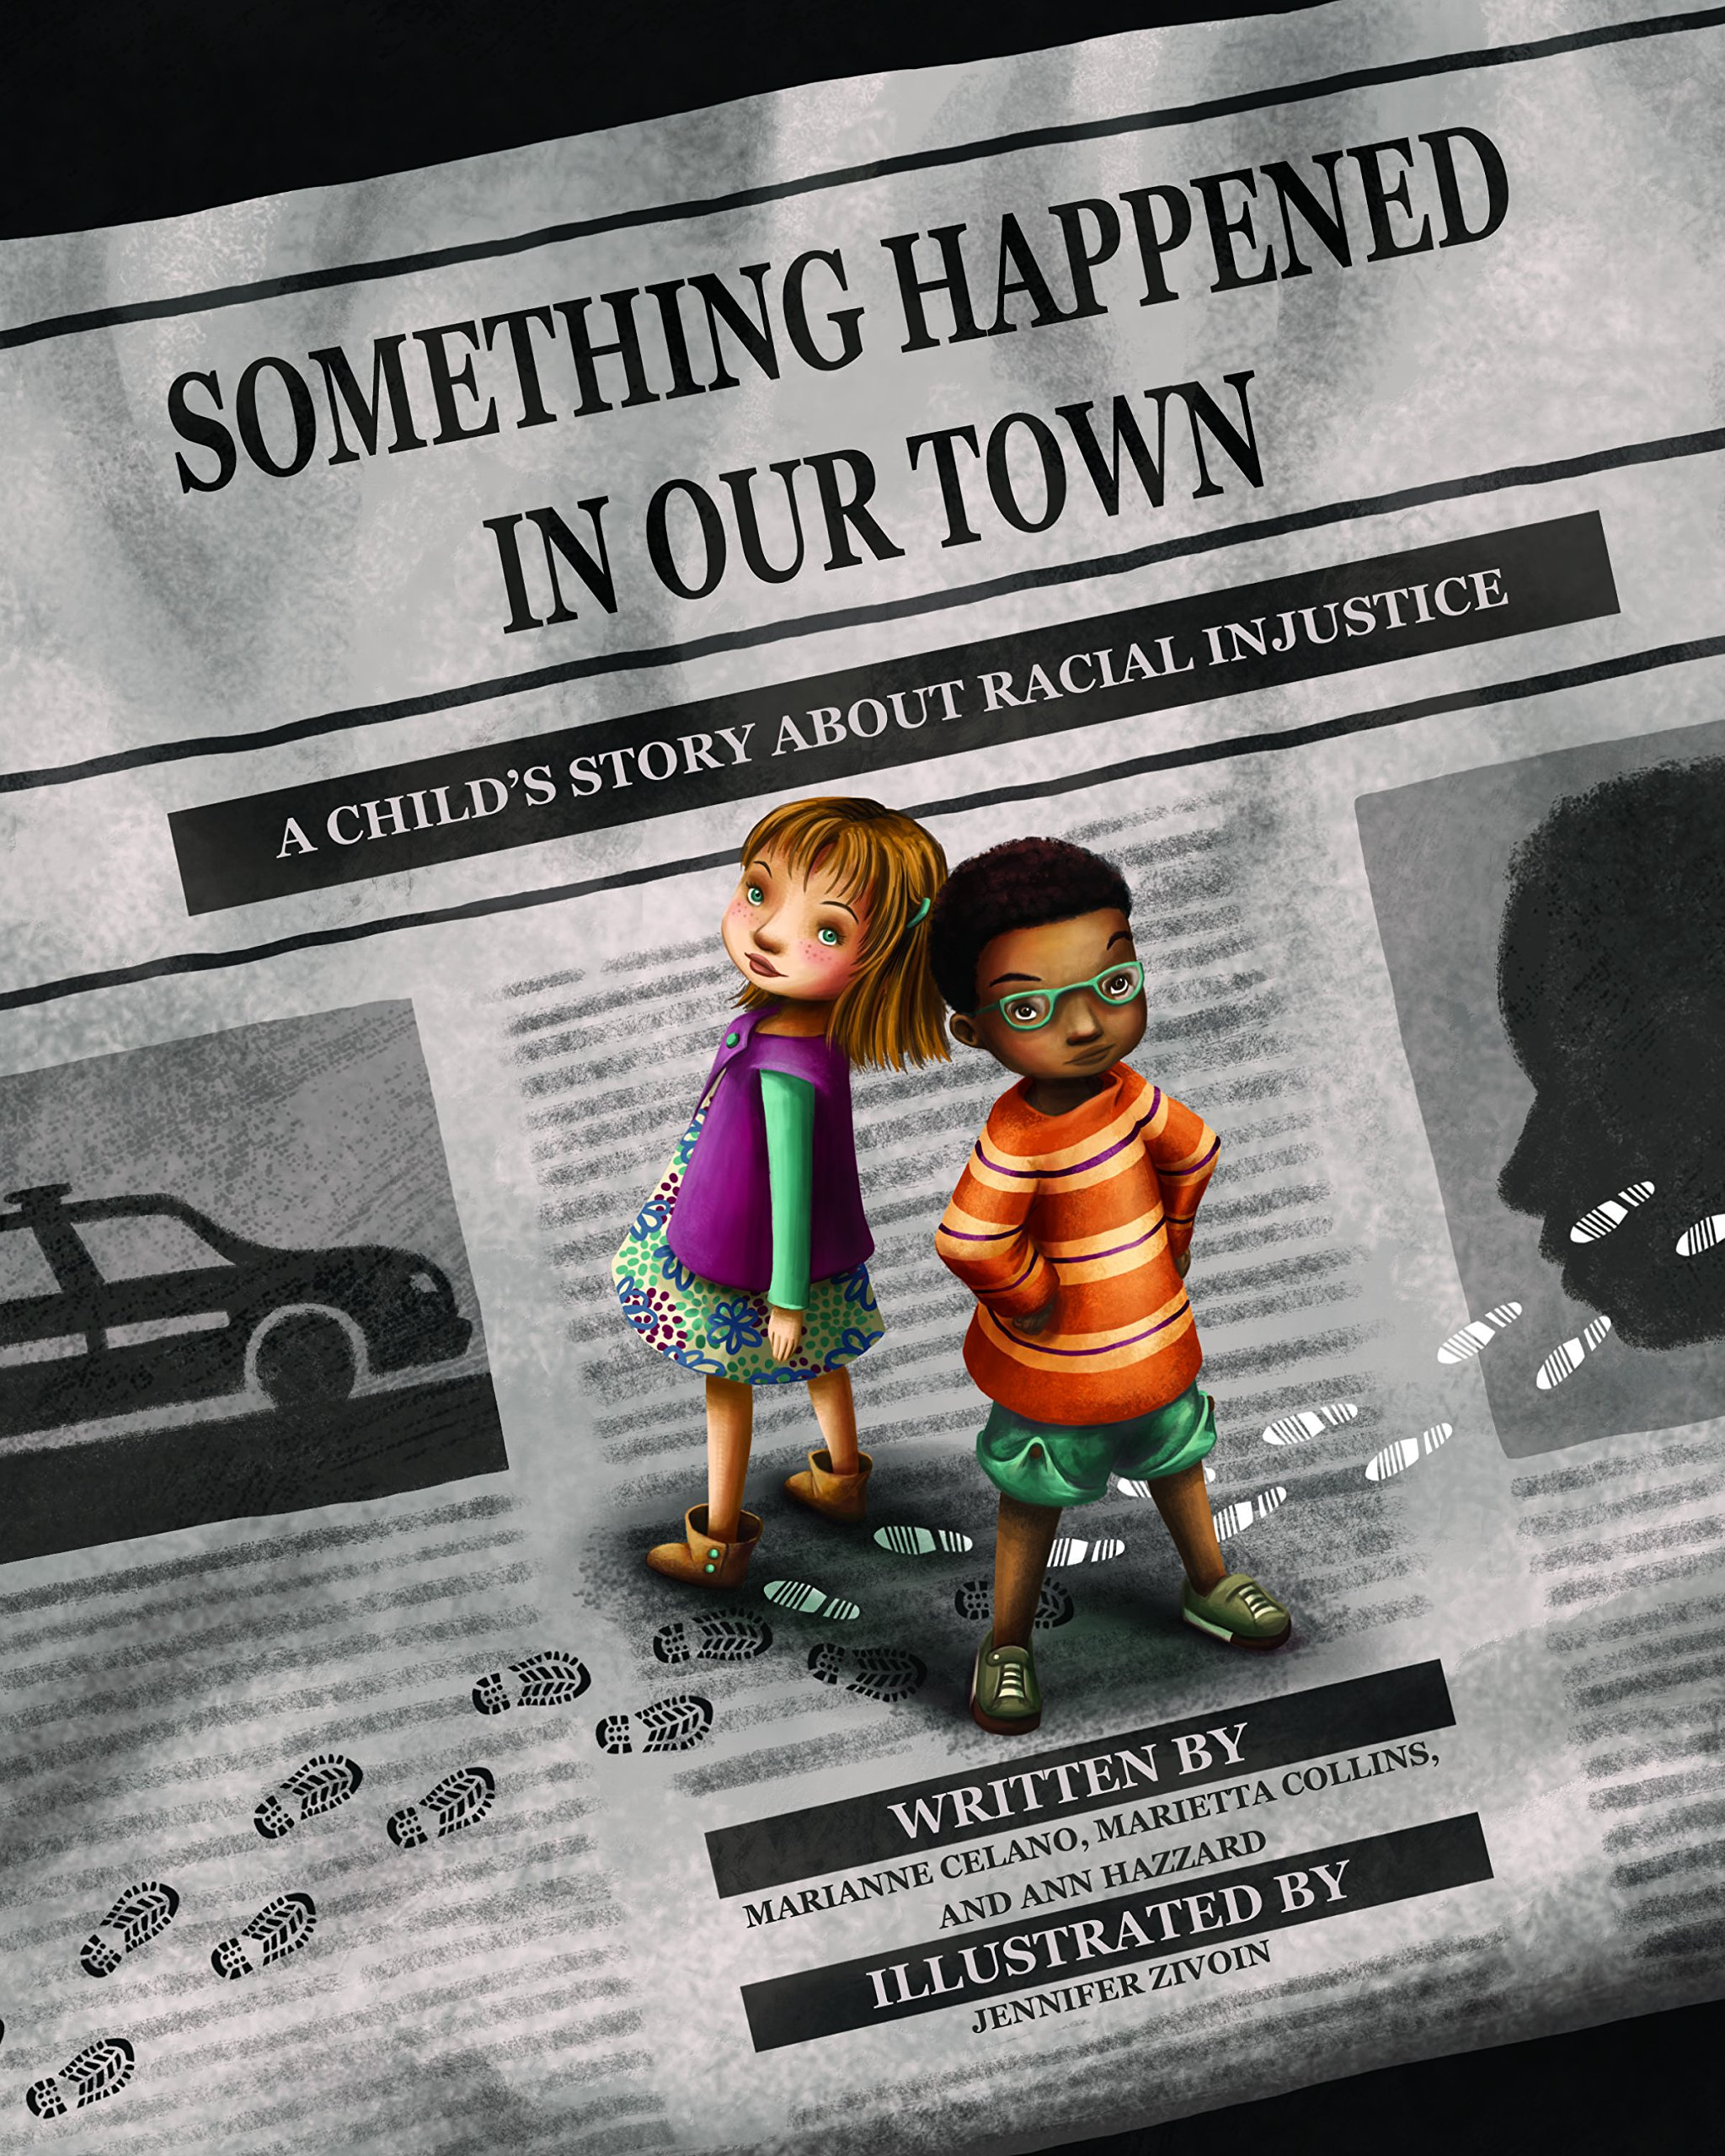 Something Happened in Our Town (A Child's Story About Racial Injustice):  Celano, Marianne: 9781433828546: Amazon.com: Books